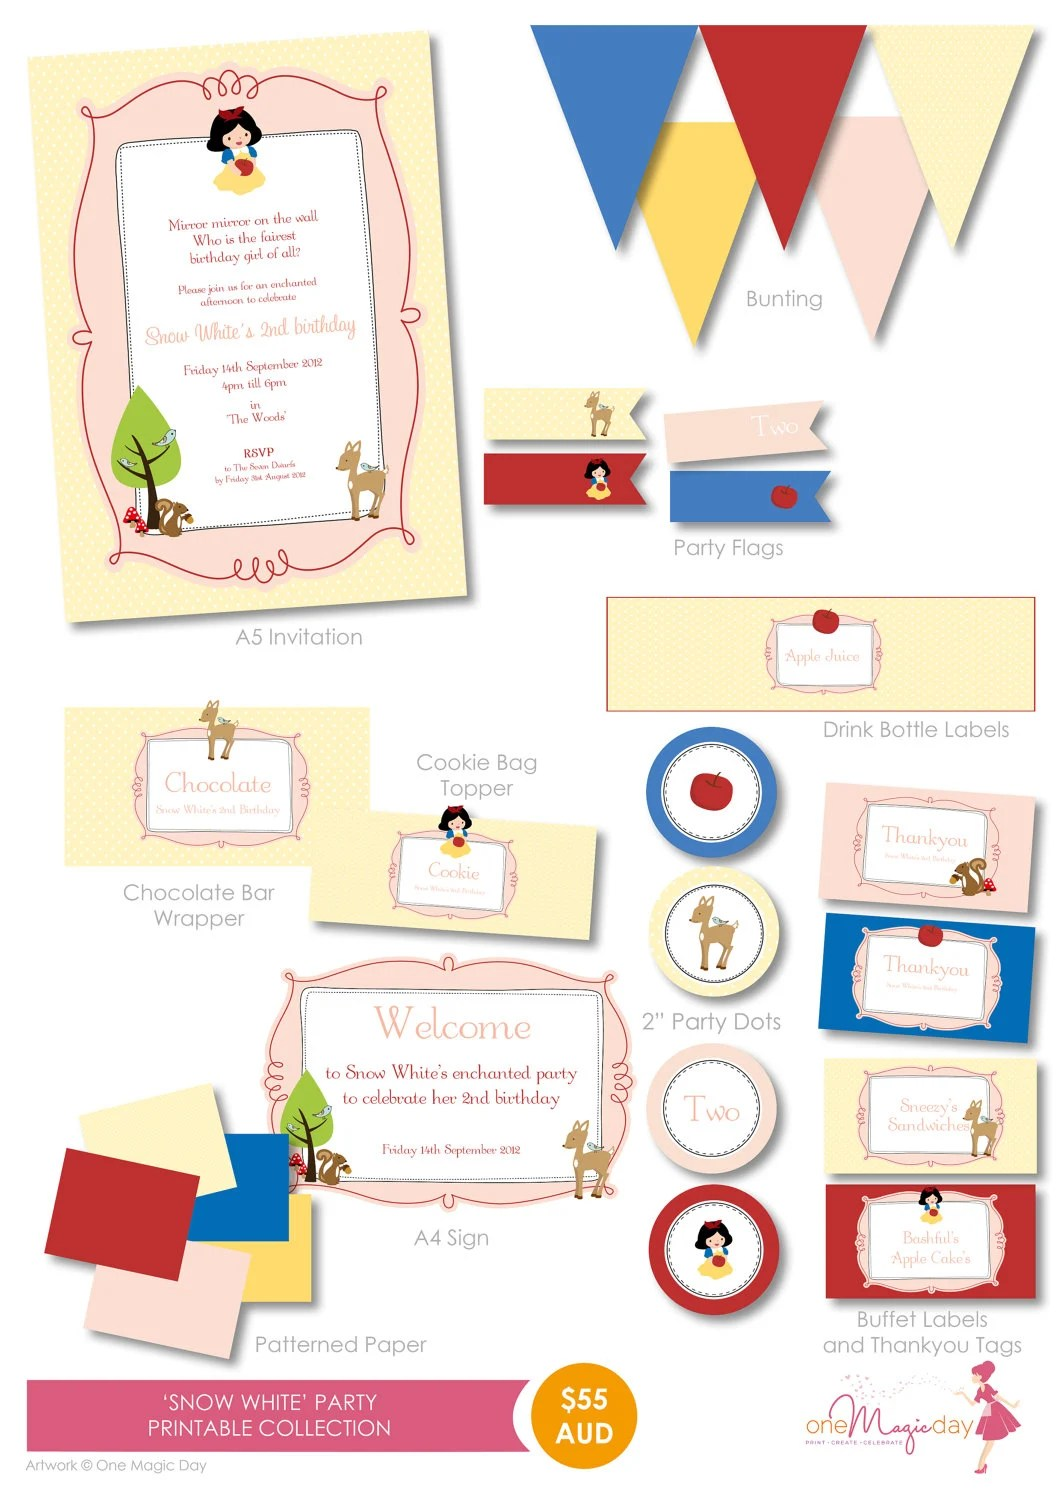 Snow White Party Printable Collection By Onemagicdayprintable